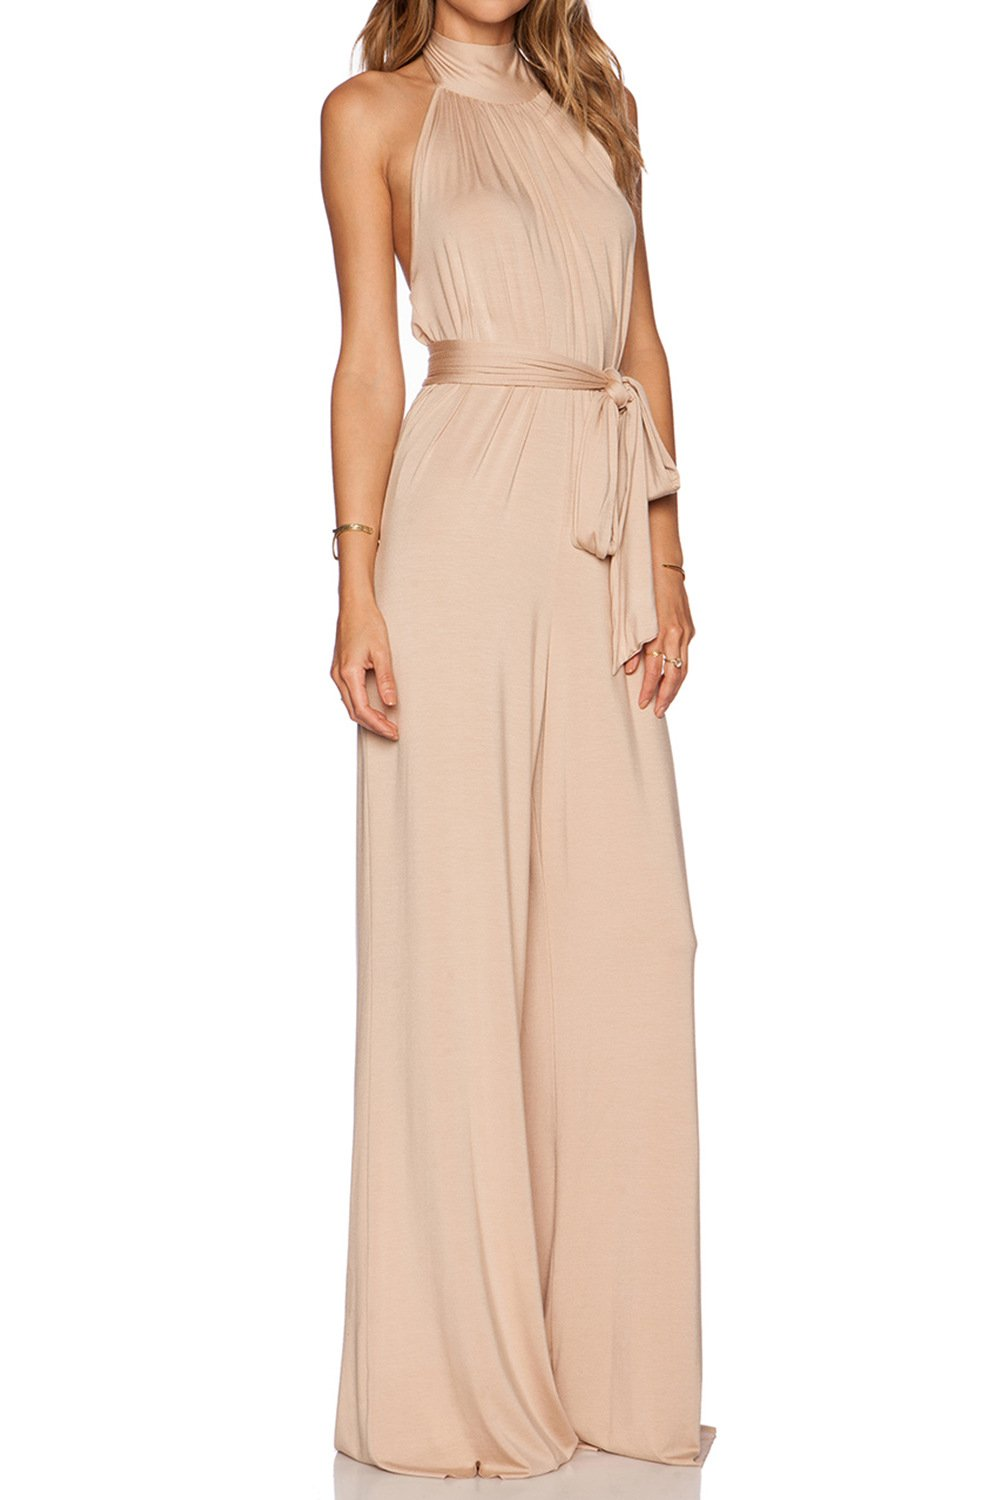 MARSEN Women's Halter Backless Rompers Long High Neck Party Jumpsuits with Belt Nude Size 6 by MARSEN (Image #3)